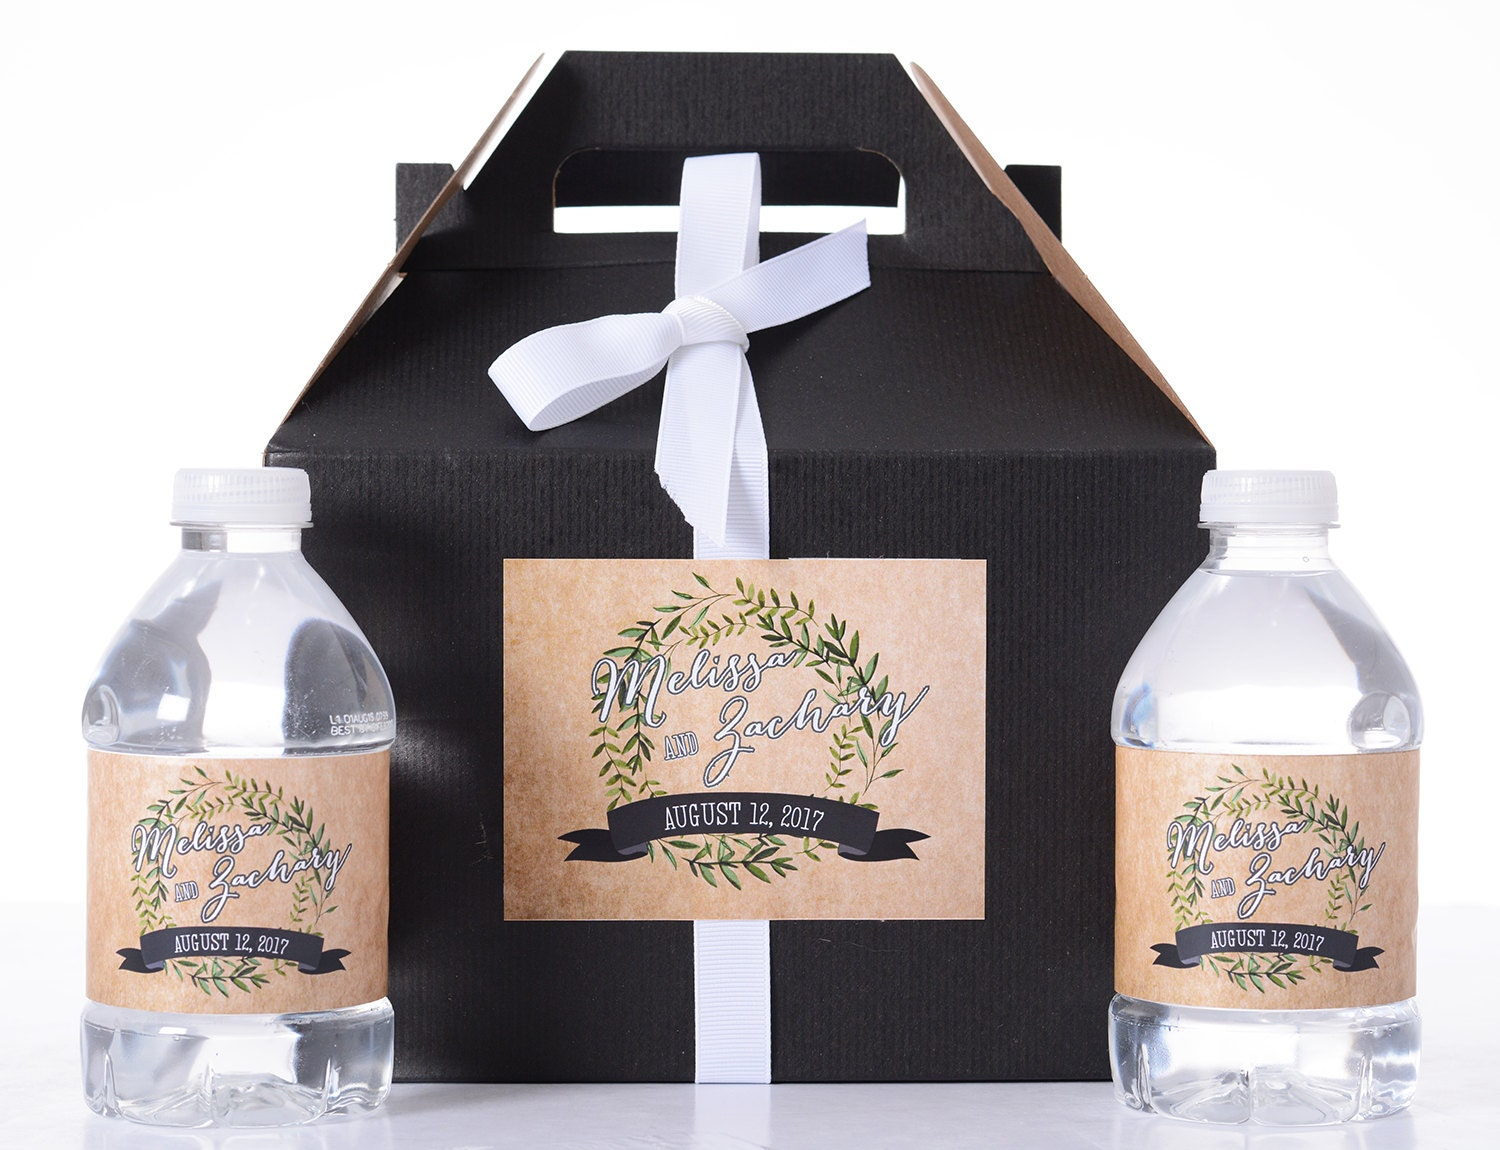 Wedding Gift Box For Guests : Wedding Guest Boxes 25 Wedding Favor Box / Welcome Box